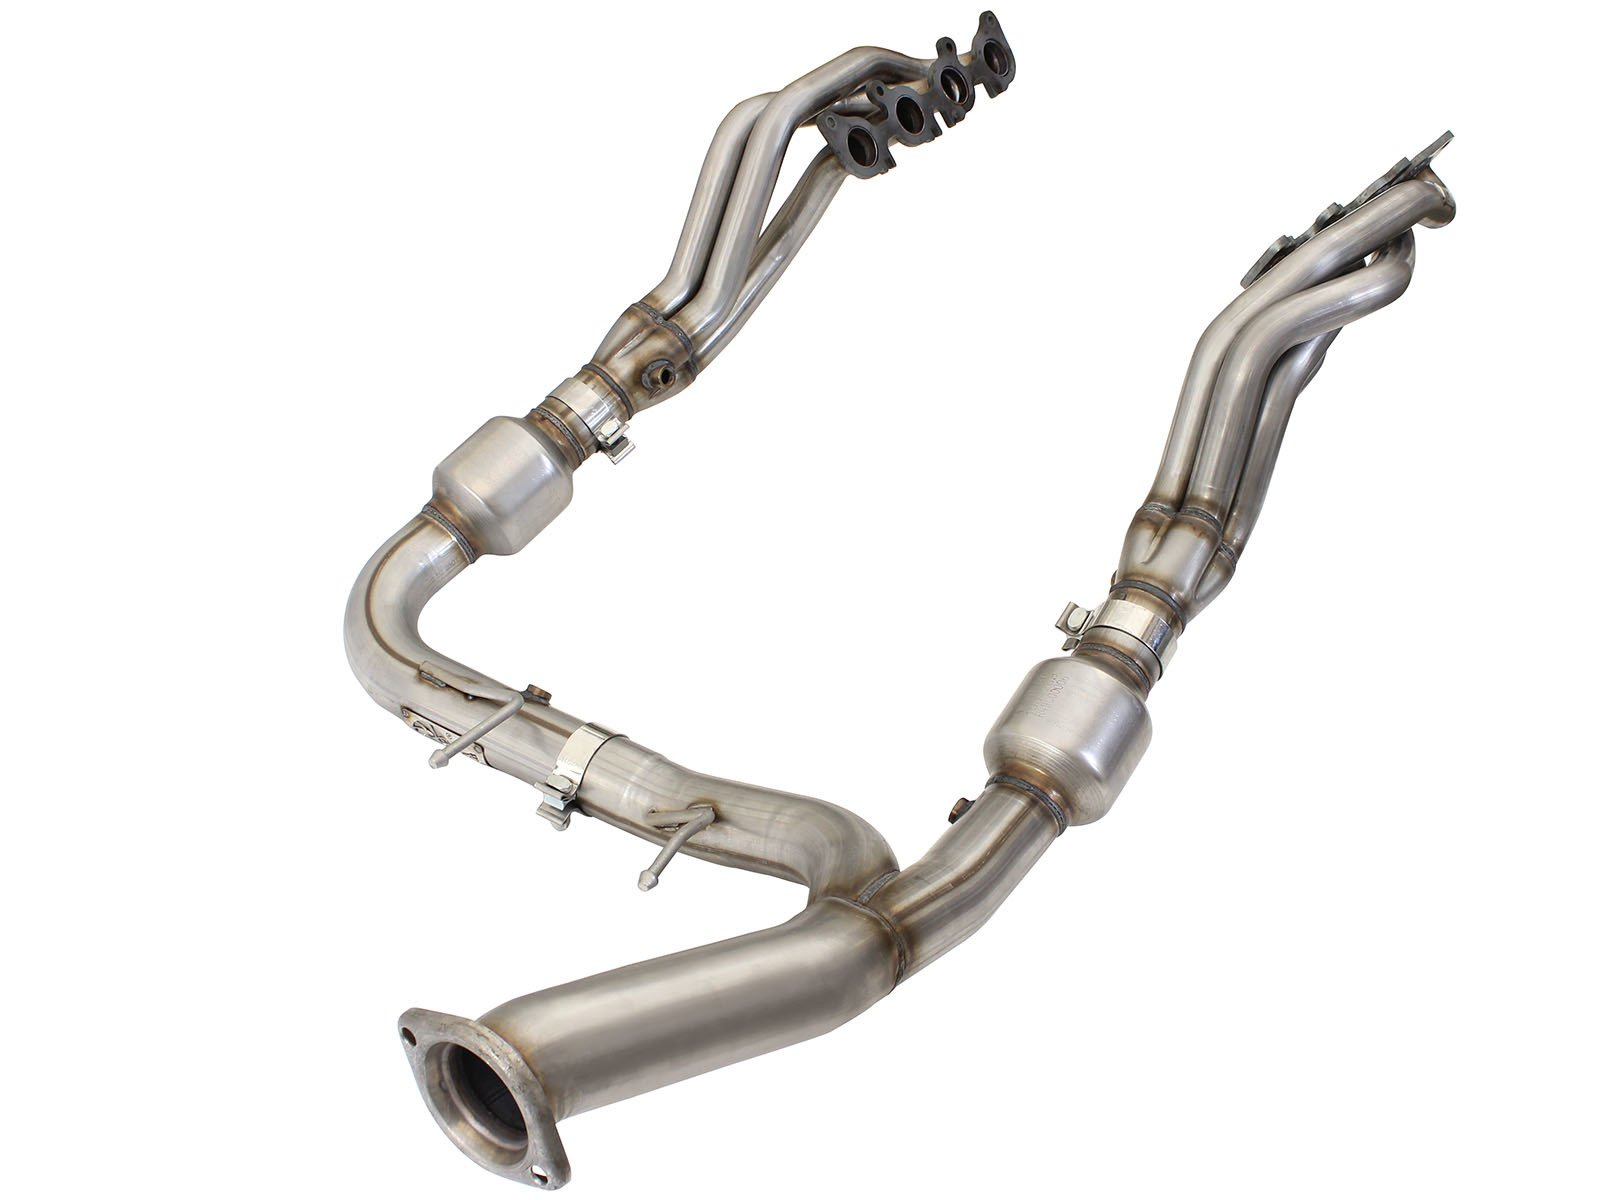 aFe Twisted Steel Headers & Y-Pipe SS 15-16 Ford F-150 V8 5.0L with Cats